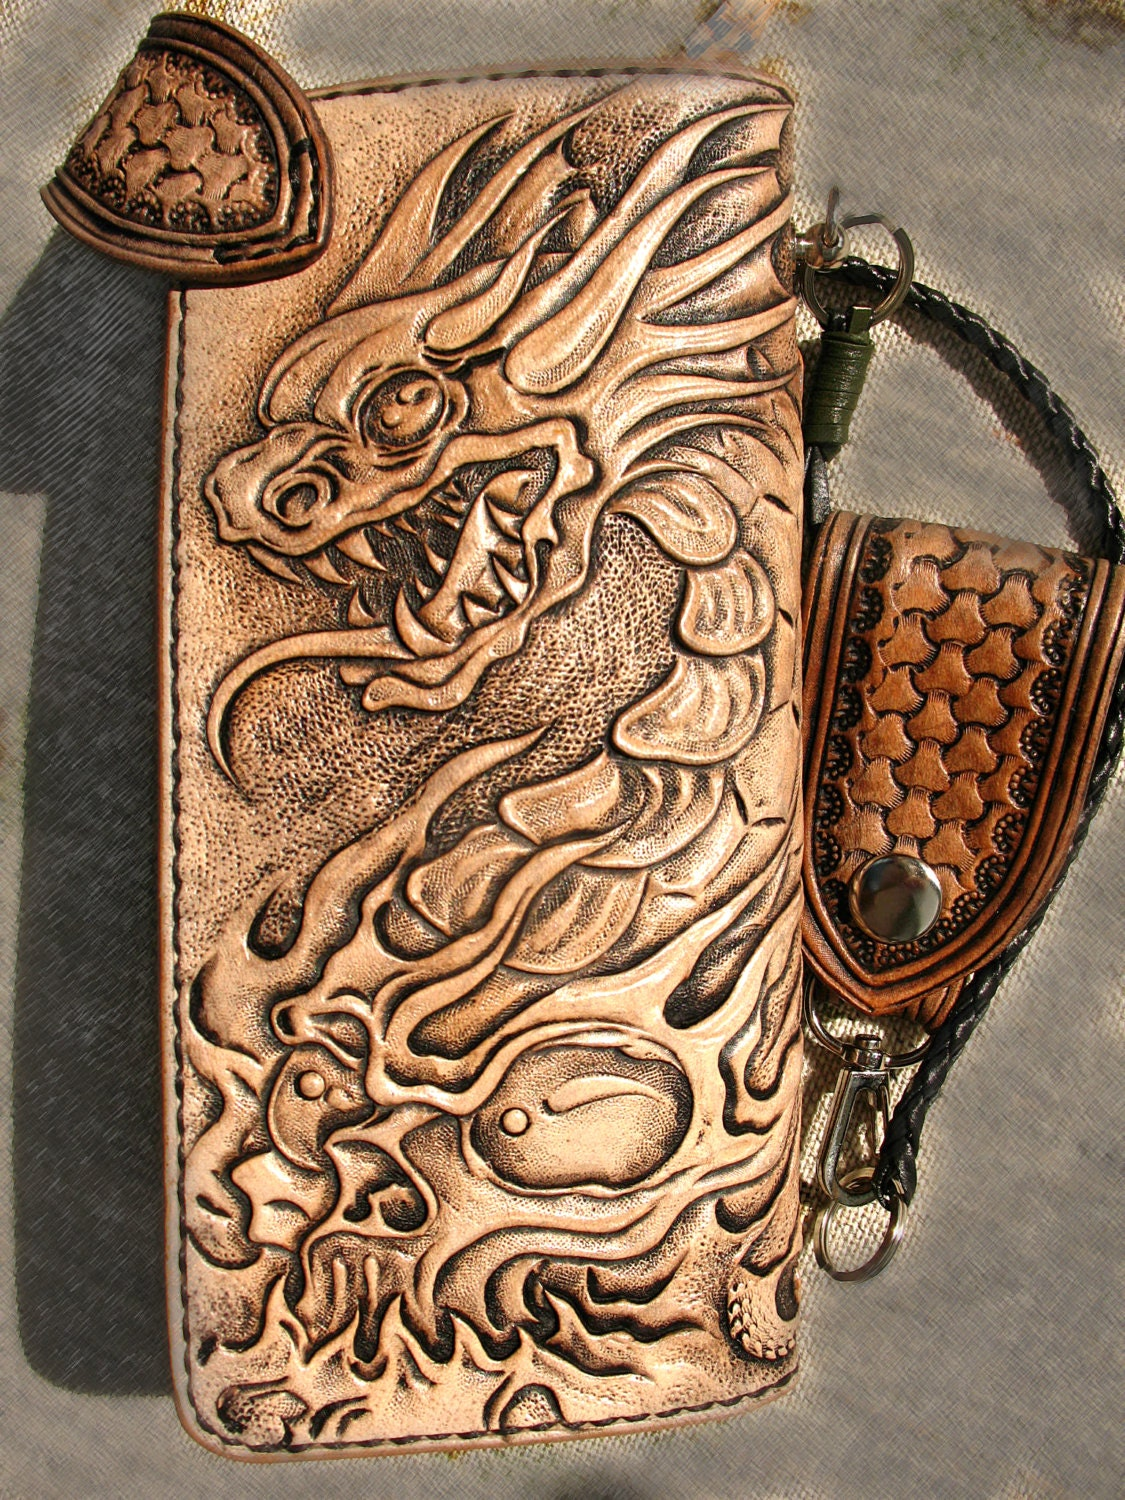 Tooled biker wallet dragon skull sheridan belt loop braided